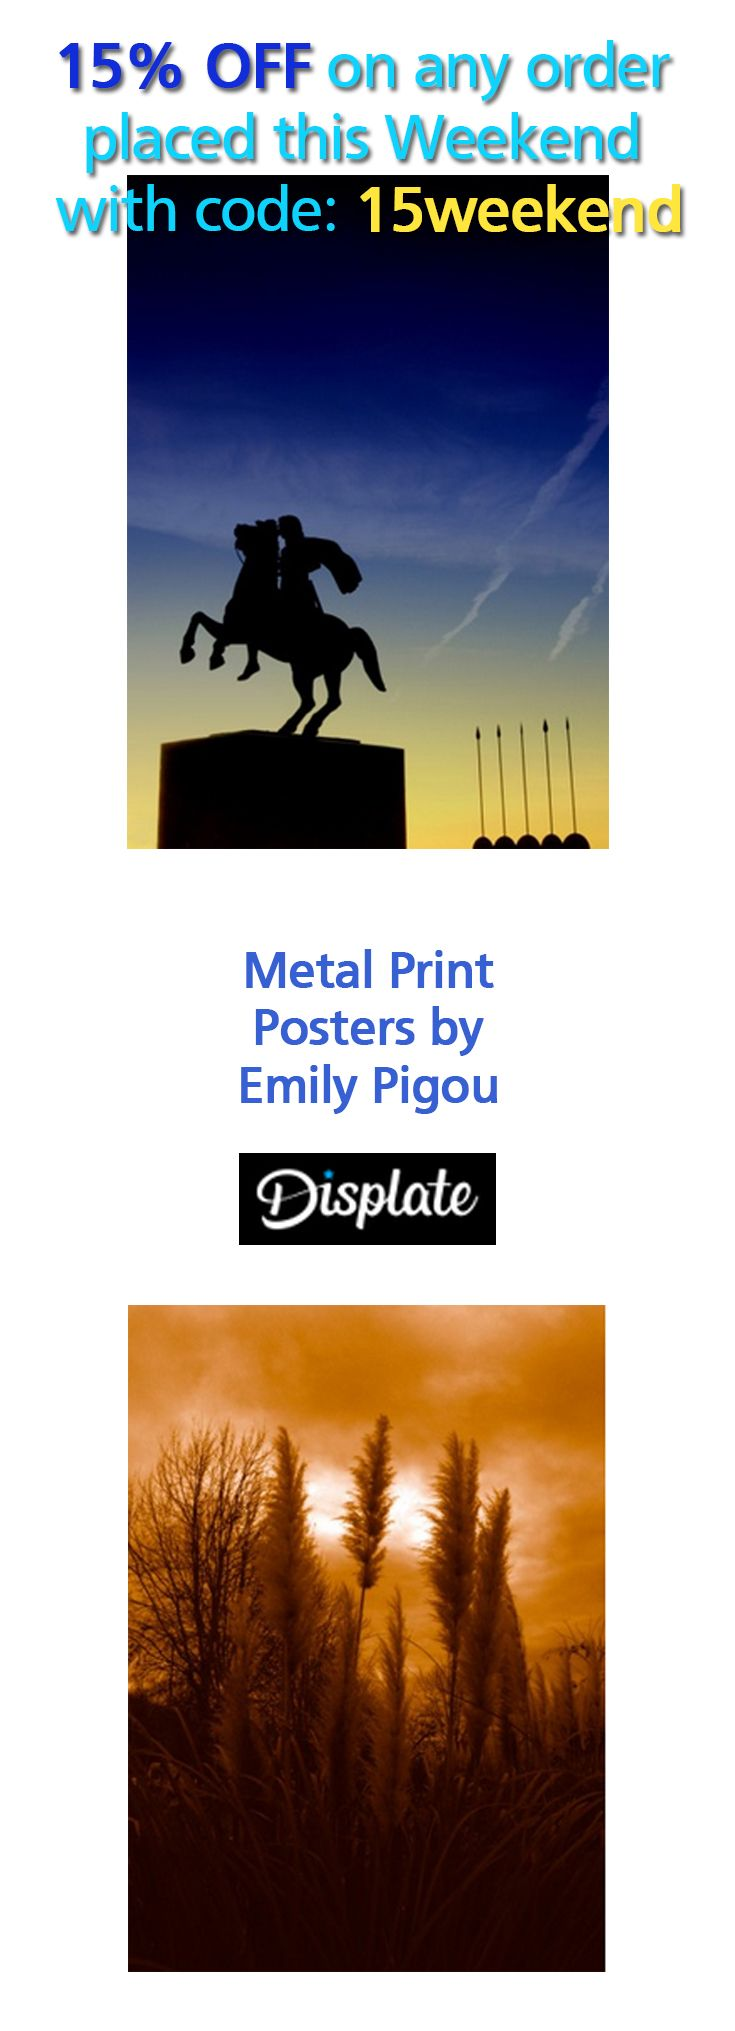 Emily Pigou Photography on Metal Prints. 15% OFF on any order placed this Weekend with code -----> 15weekend.   #discount #save #sales #weekendsales #displate #photography #AlexandertheGreat #MacedonianKing #Greece #Thessaloniki #Travel #statue #homedecor #Greek #homegifts #poster #modernhome #gifts #giftsforhim #giftsforher